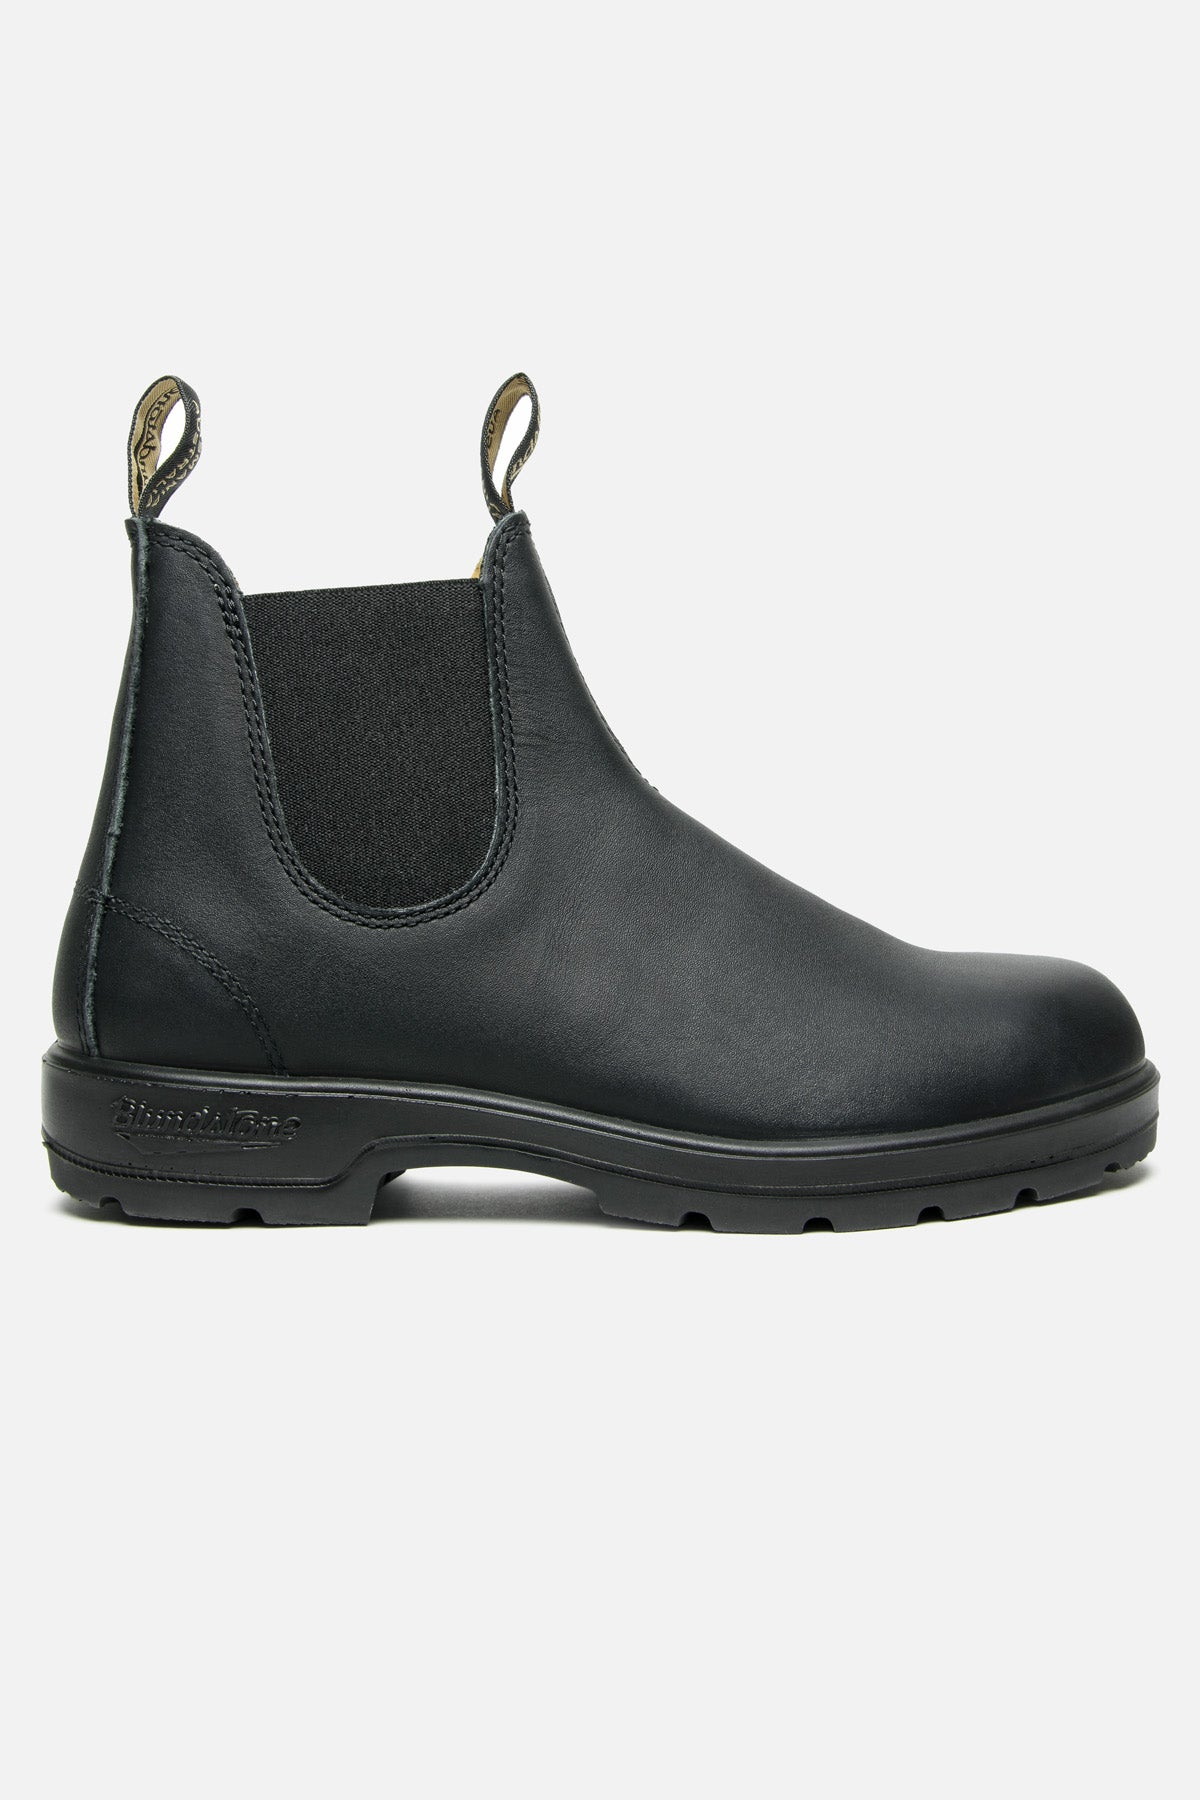 BLUNDSTONE 550 IN VOLTAN BLACK - Fortune Goods